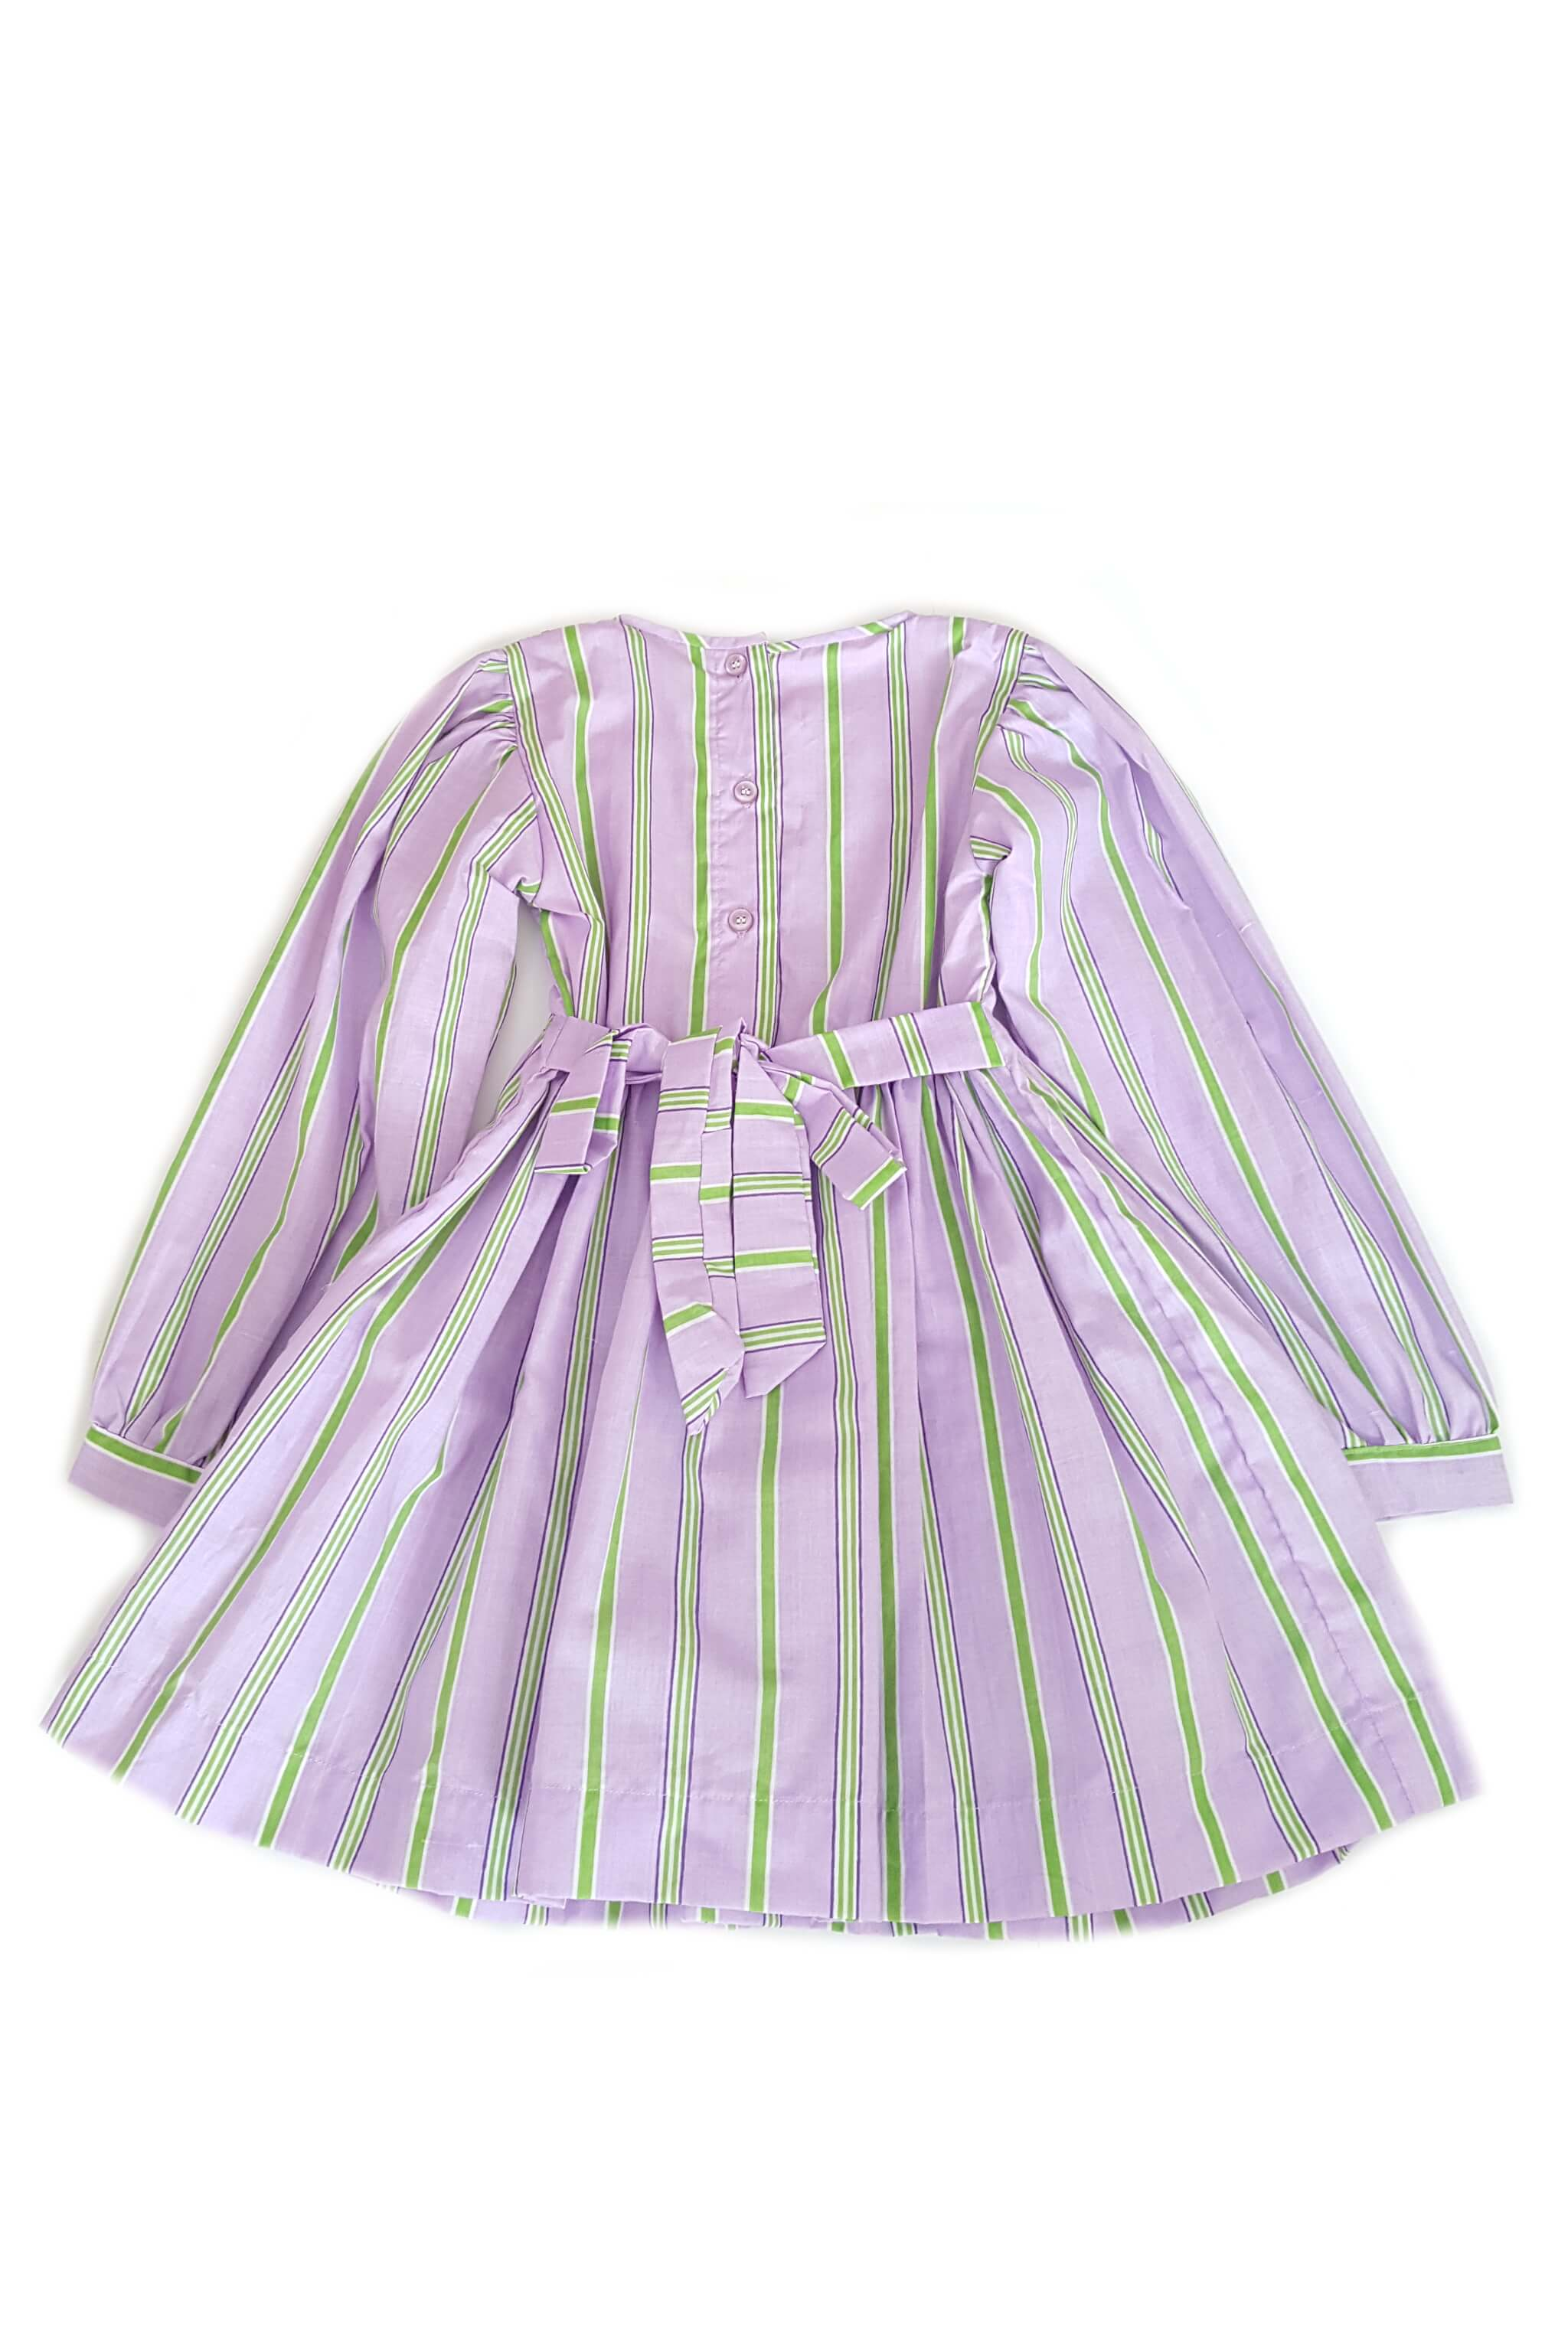 Back of whimsical long sleeve Amber dress in striped lavender and apple shades with button back and sash to tie at waist for girls